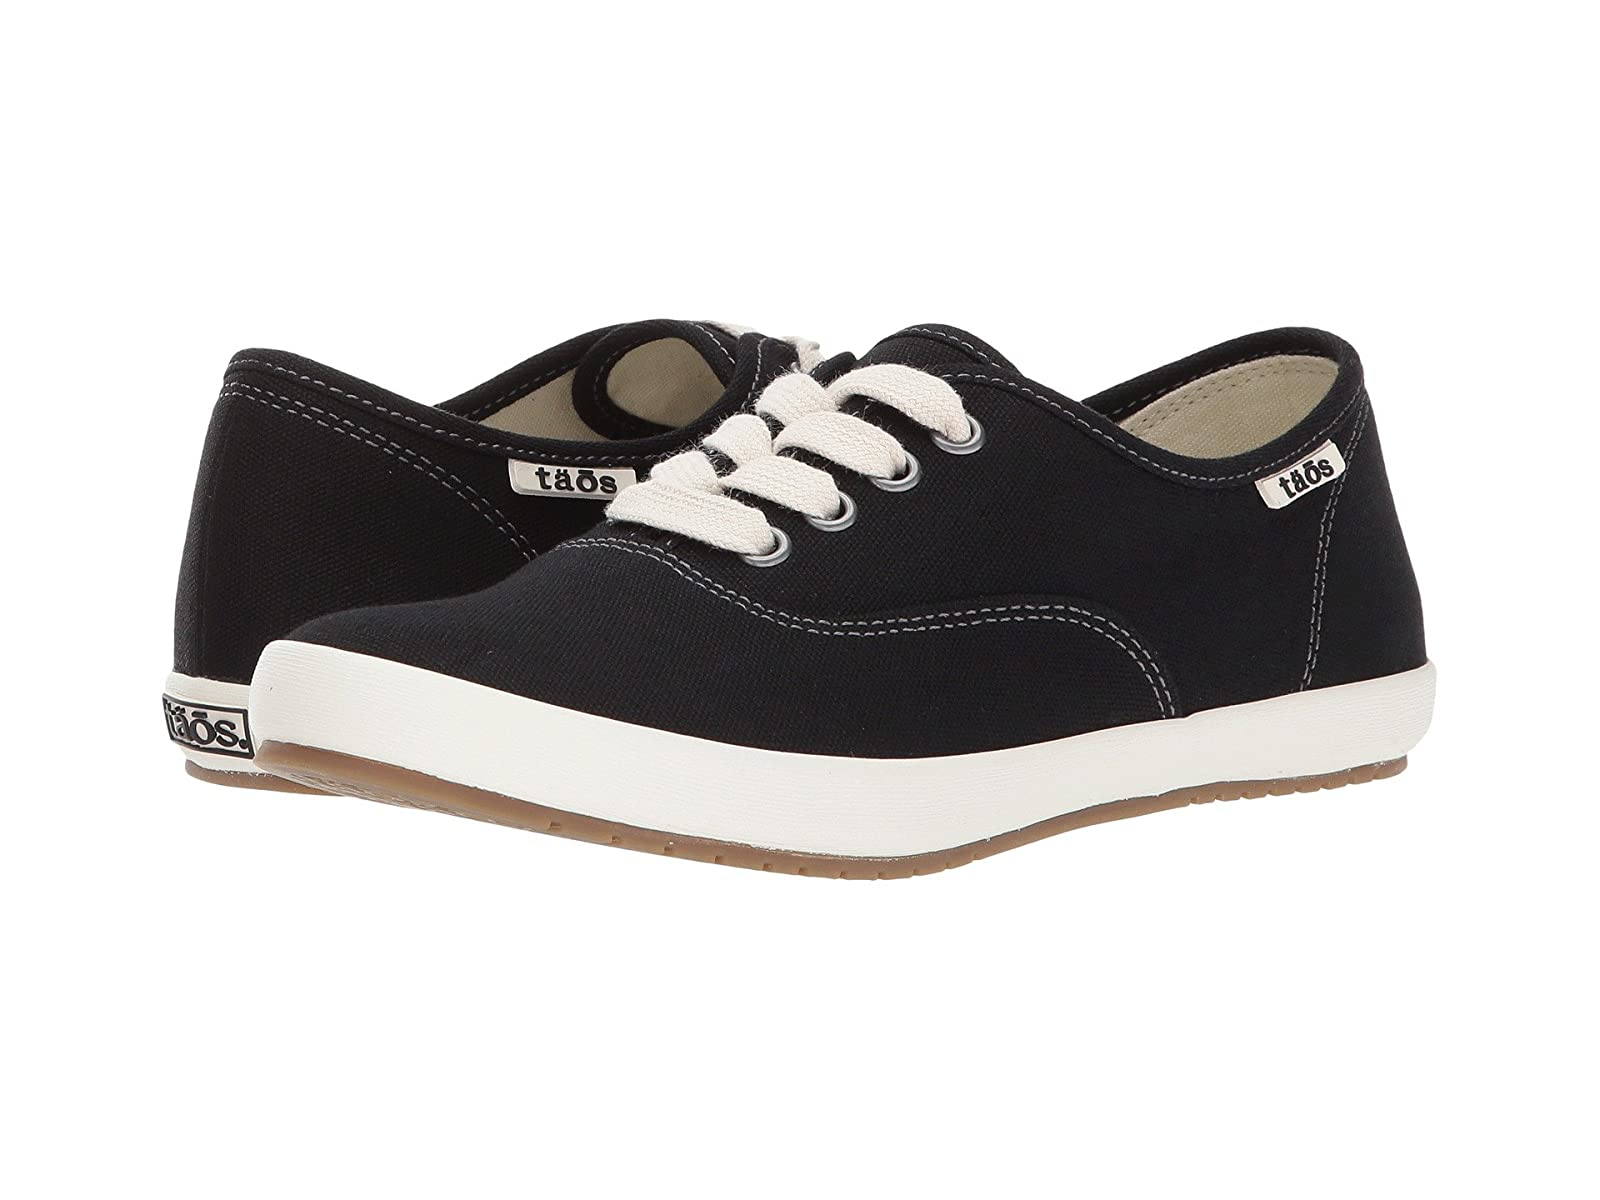 Man/Woman:Taos Footwear Low Guest Star:High Quality and Low Footwear Effort f86c61